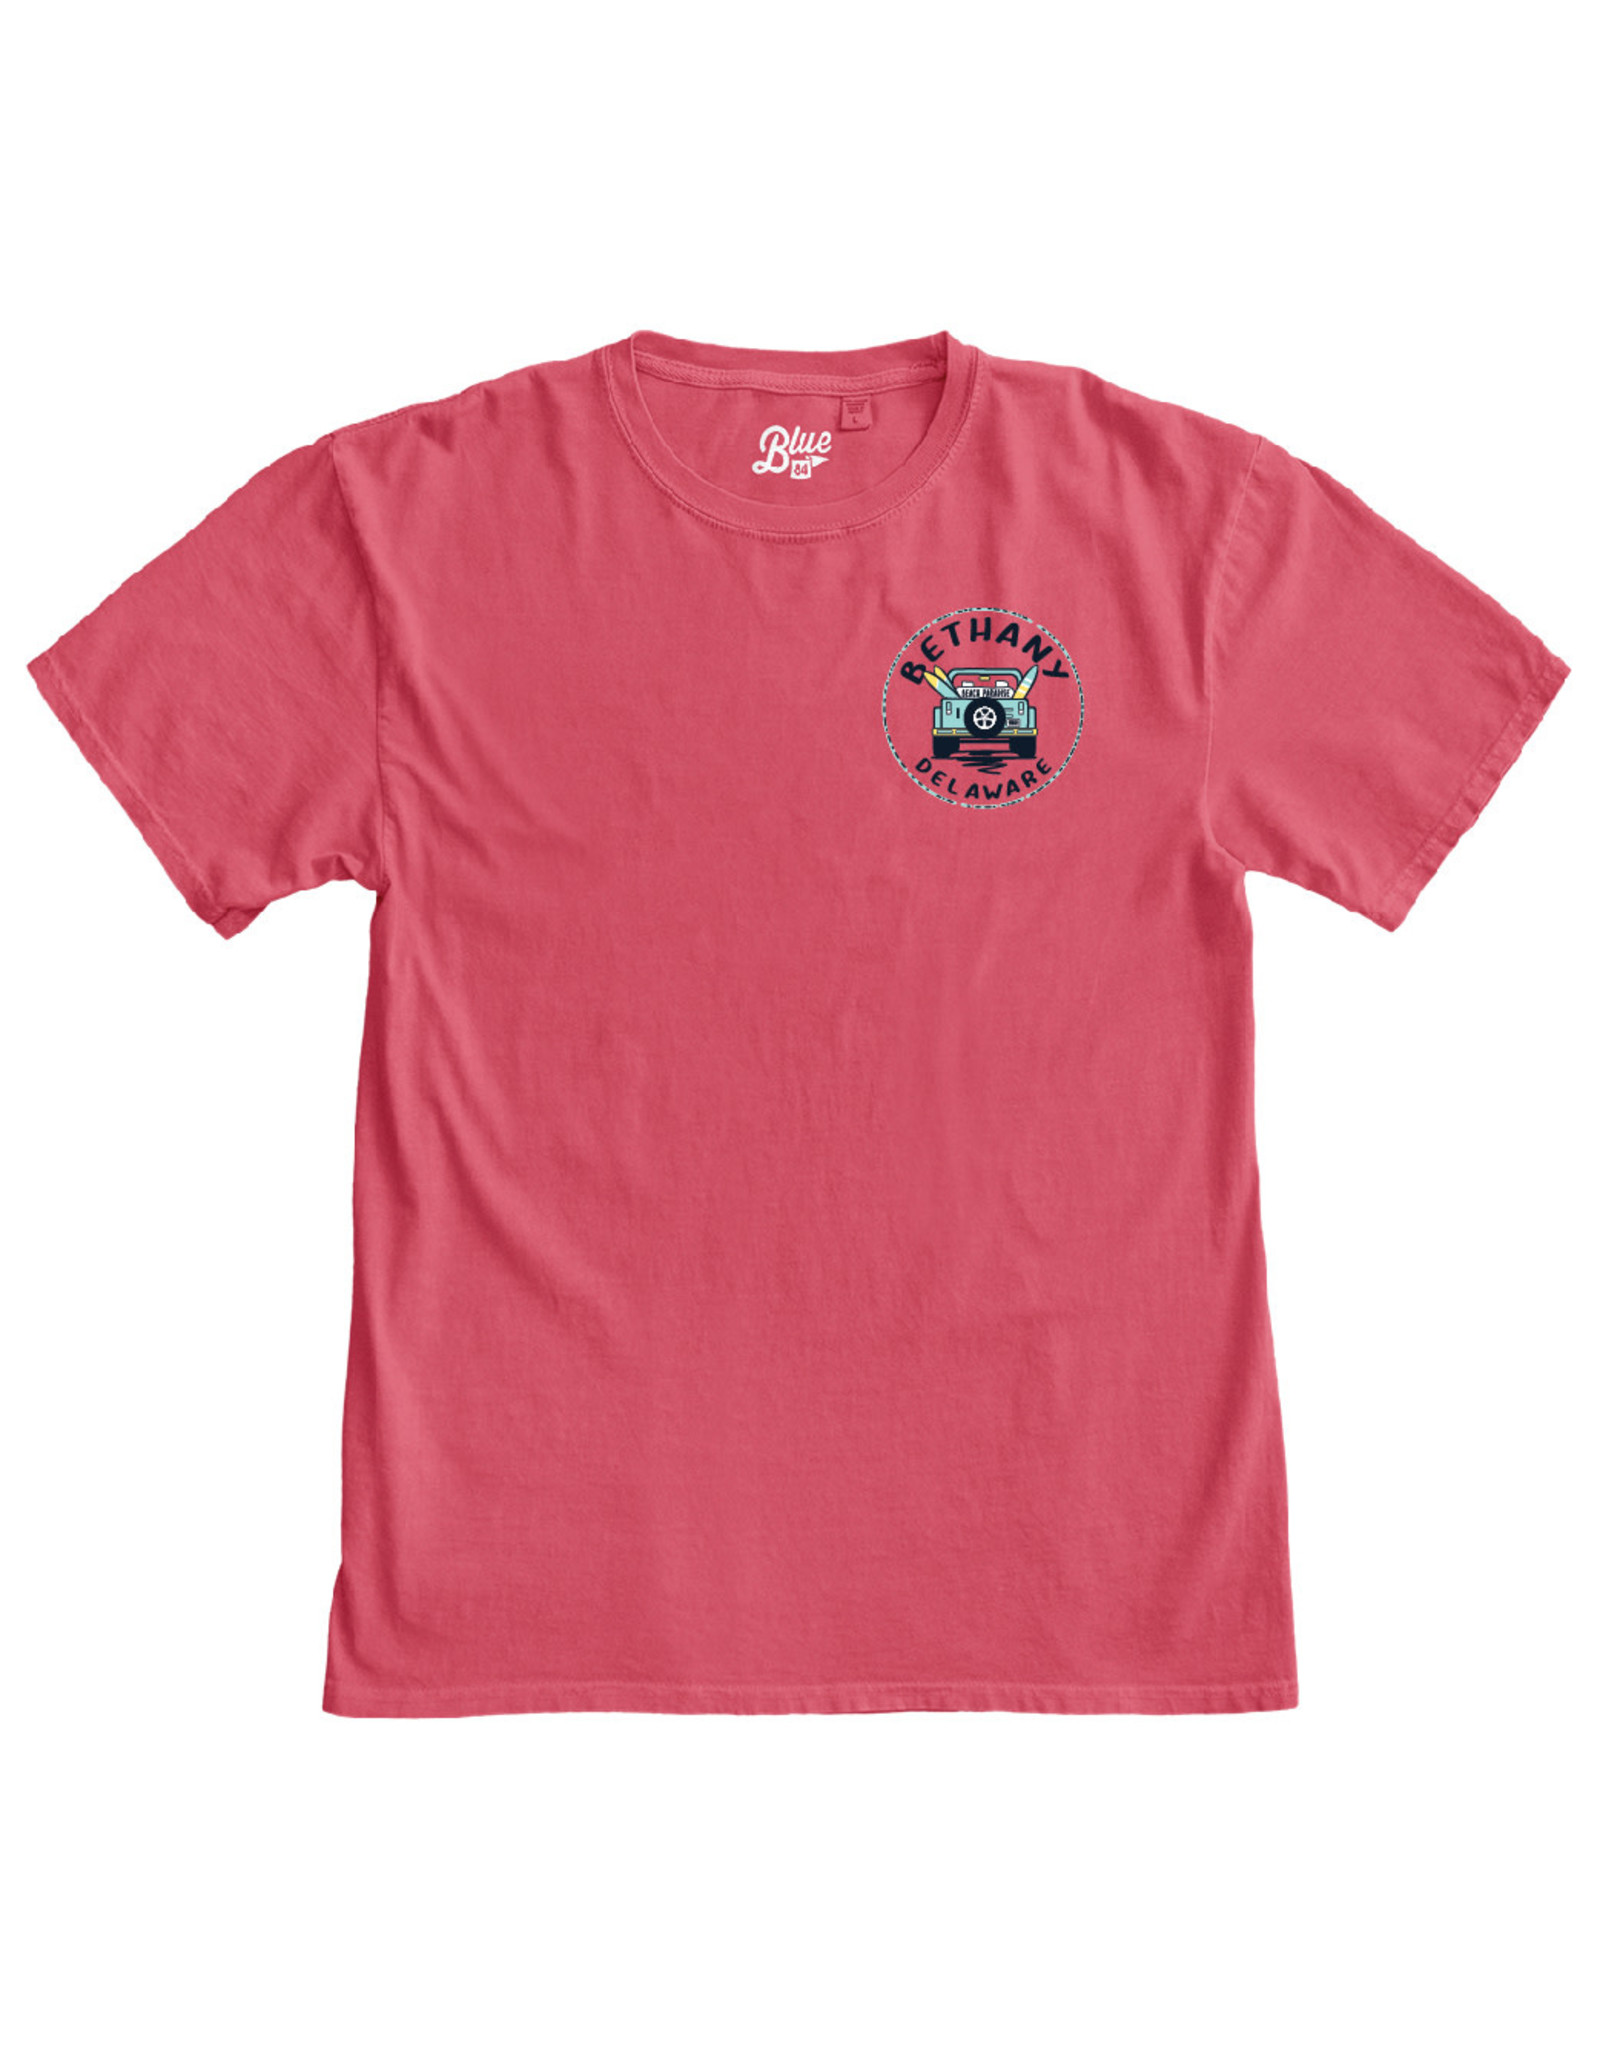 BLUE 84 BETHANY CONCURRENCE JEEP SS TEE